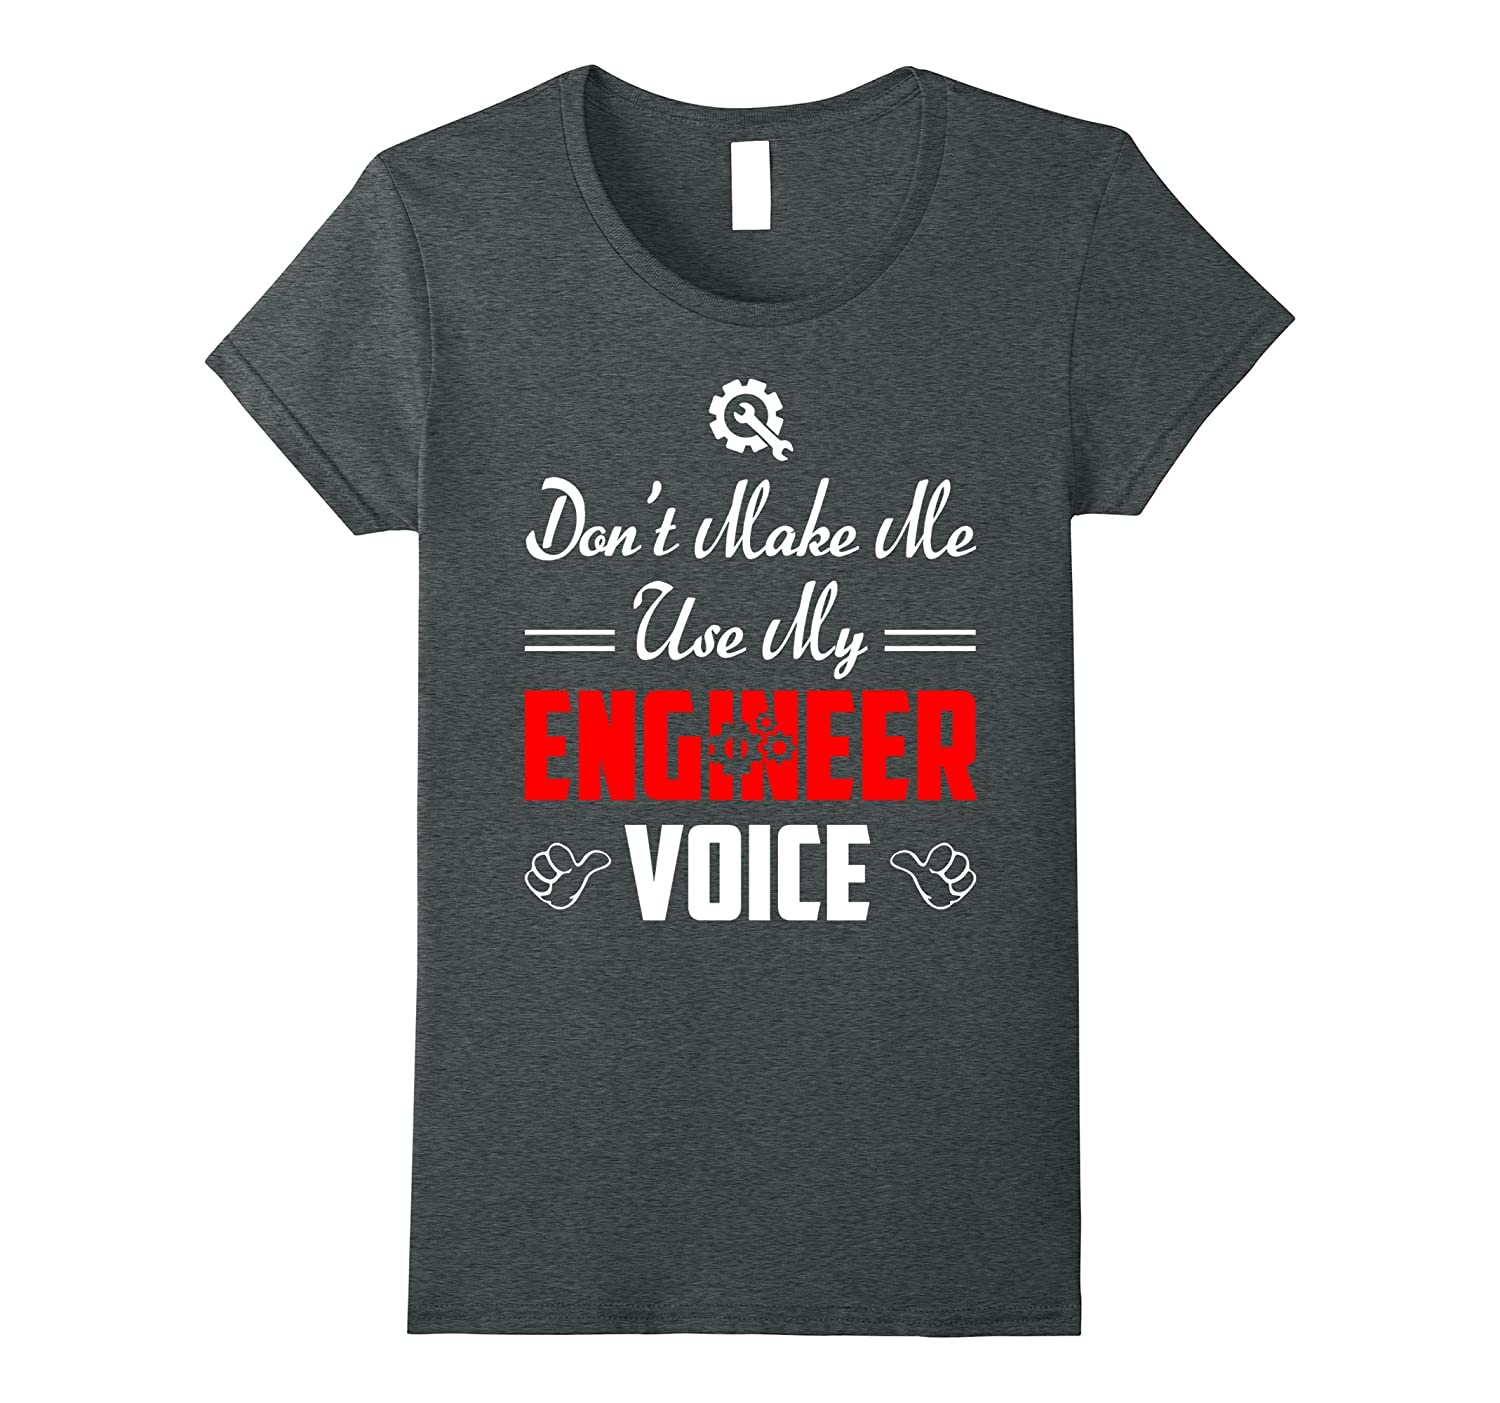 %Don't Make me Use My Engineer Voice Funny Shirt Gifts